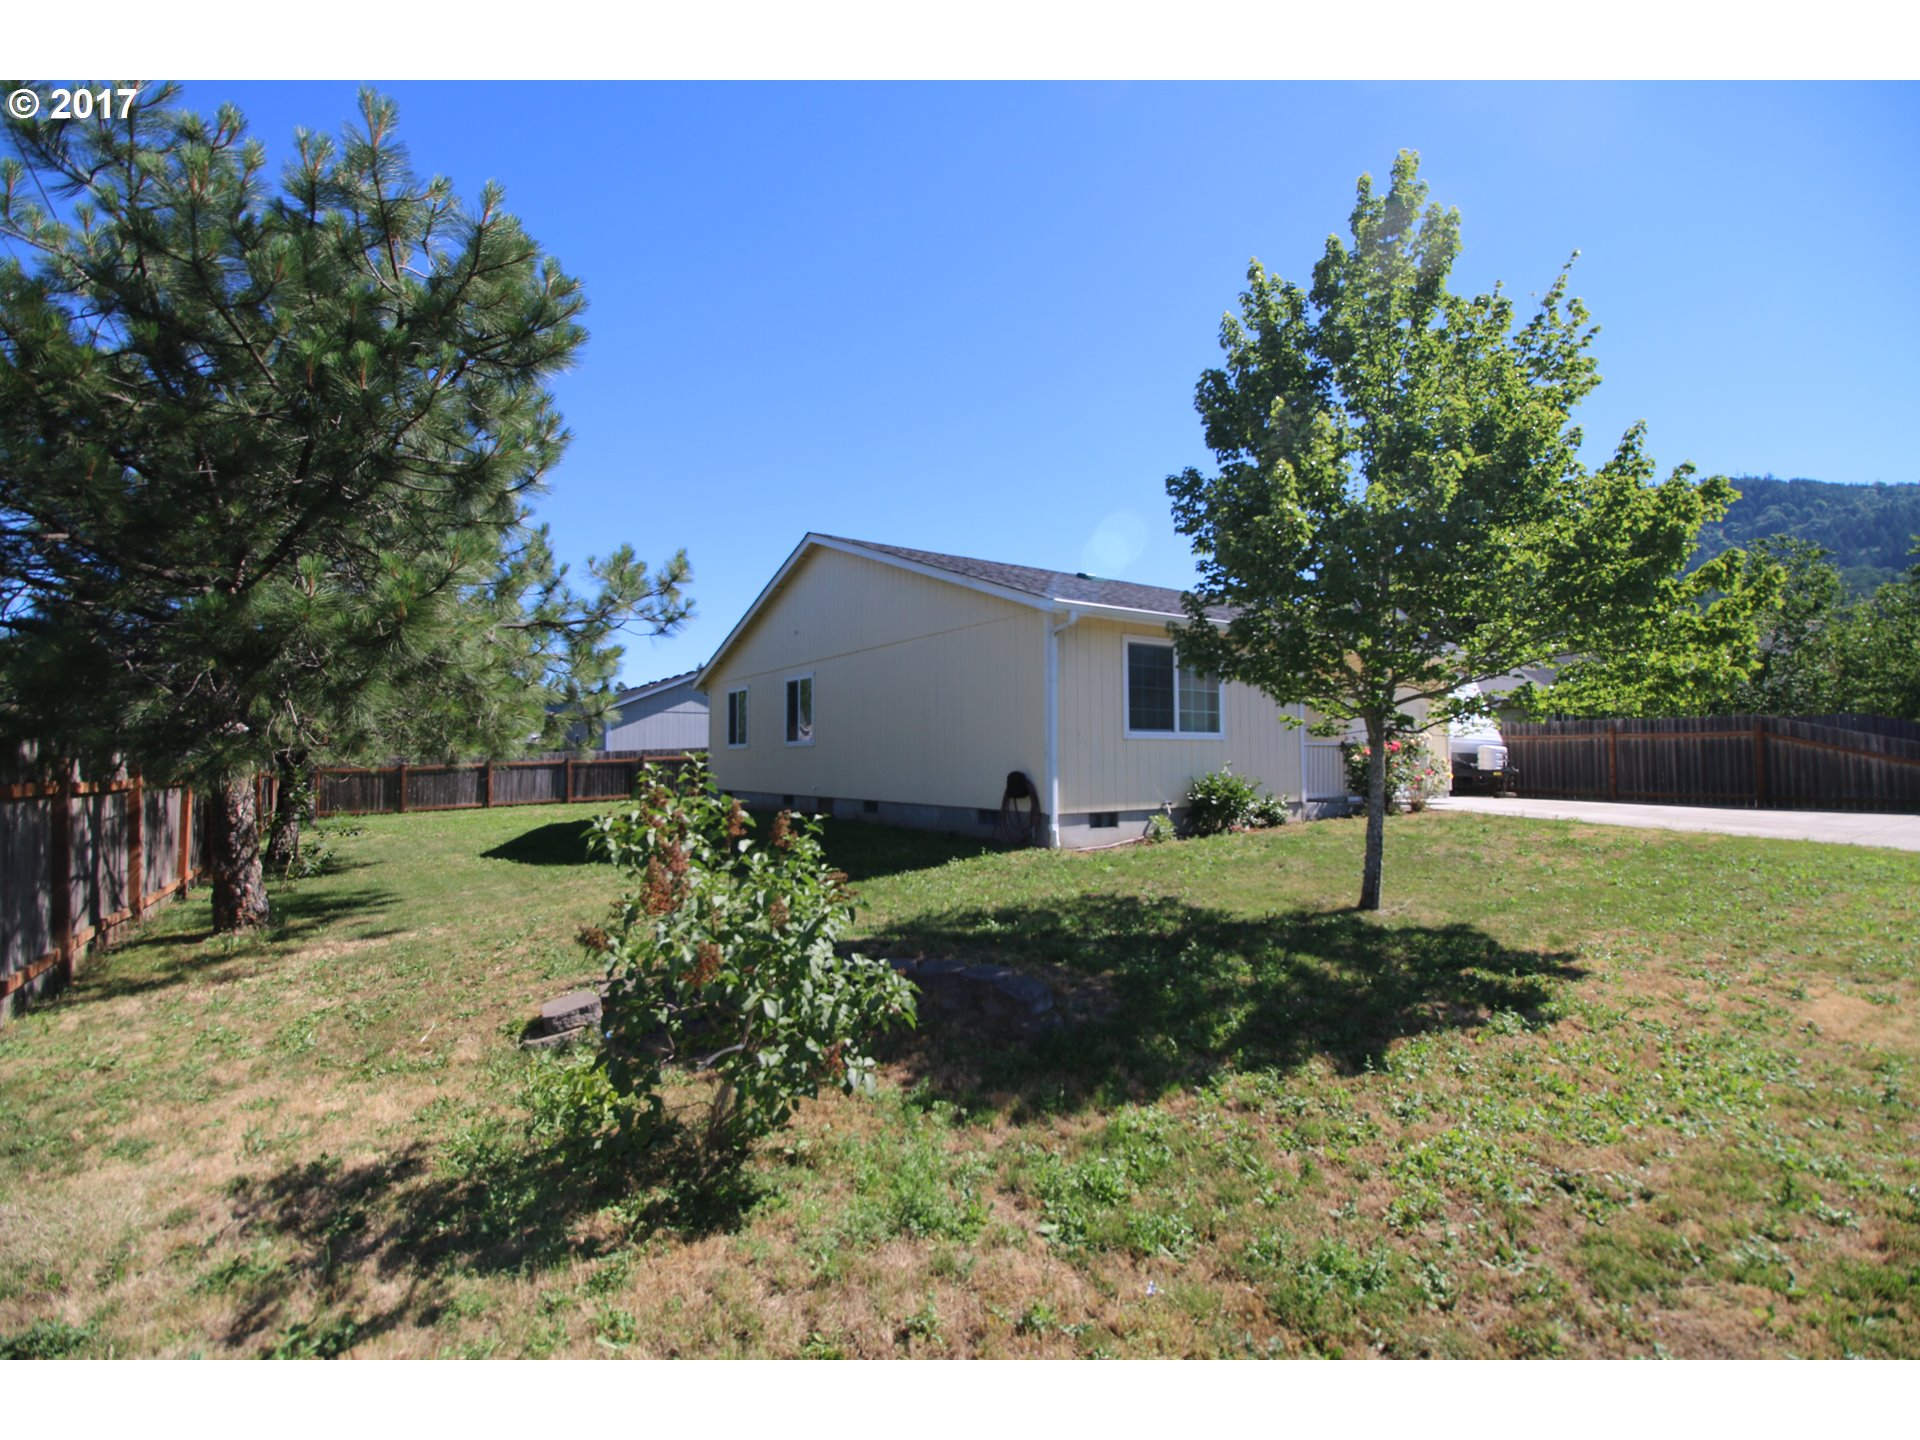 11 E 4TH ST Lowell, OR 97452 - MLS #: 17542998